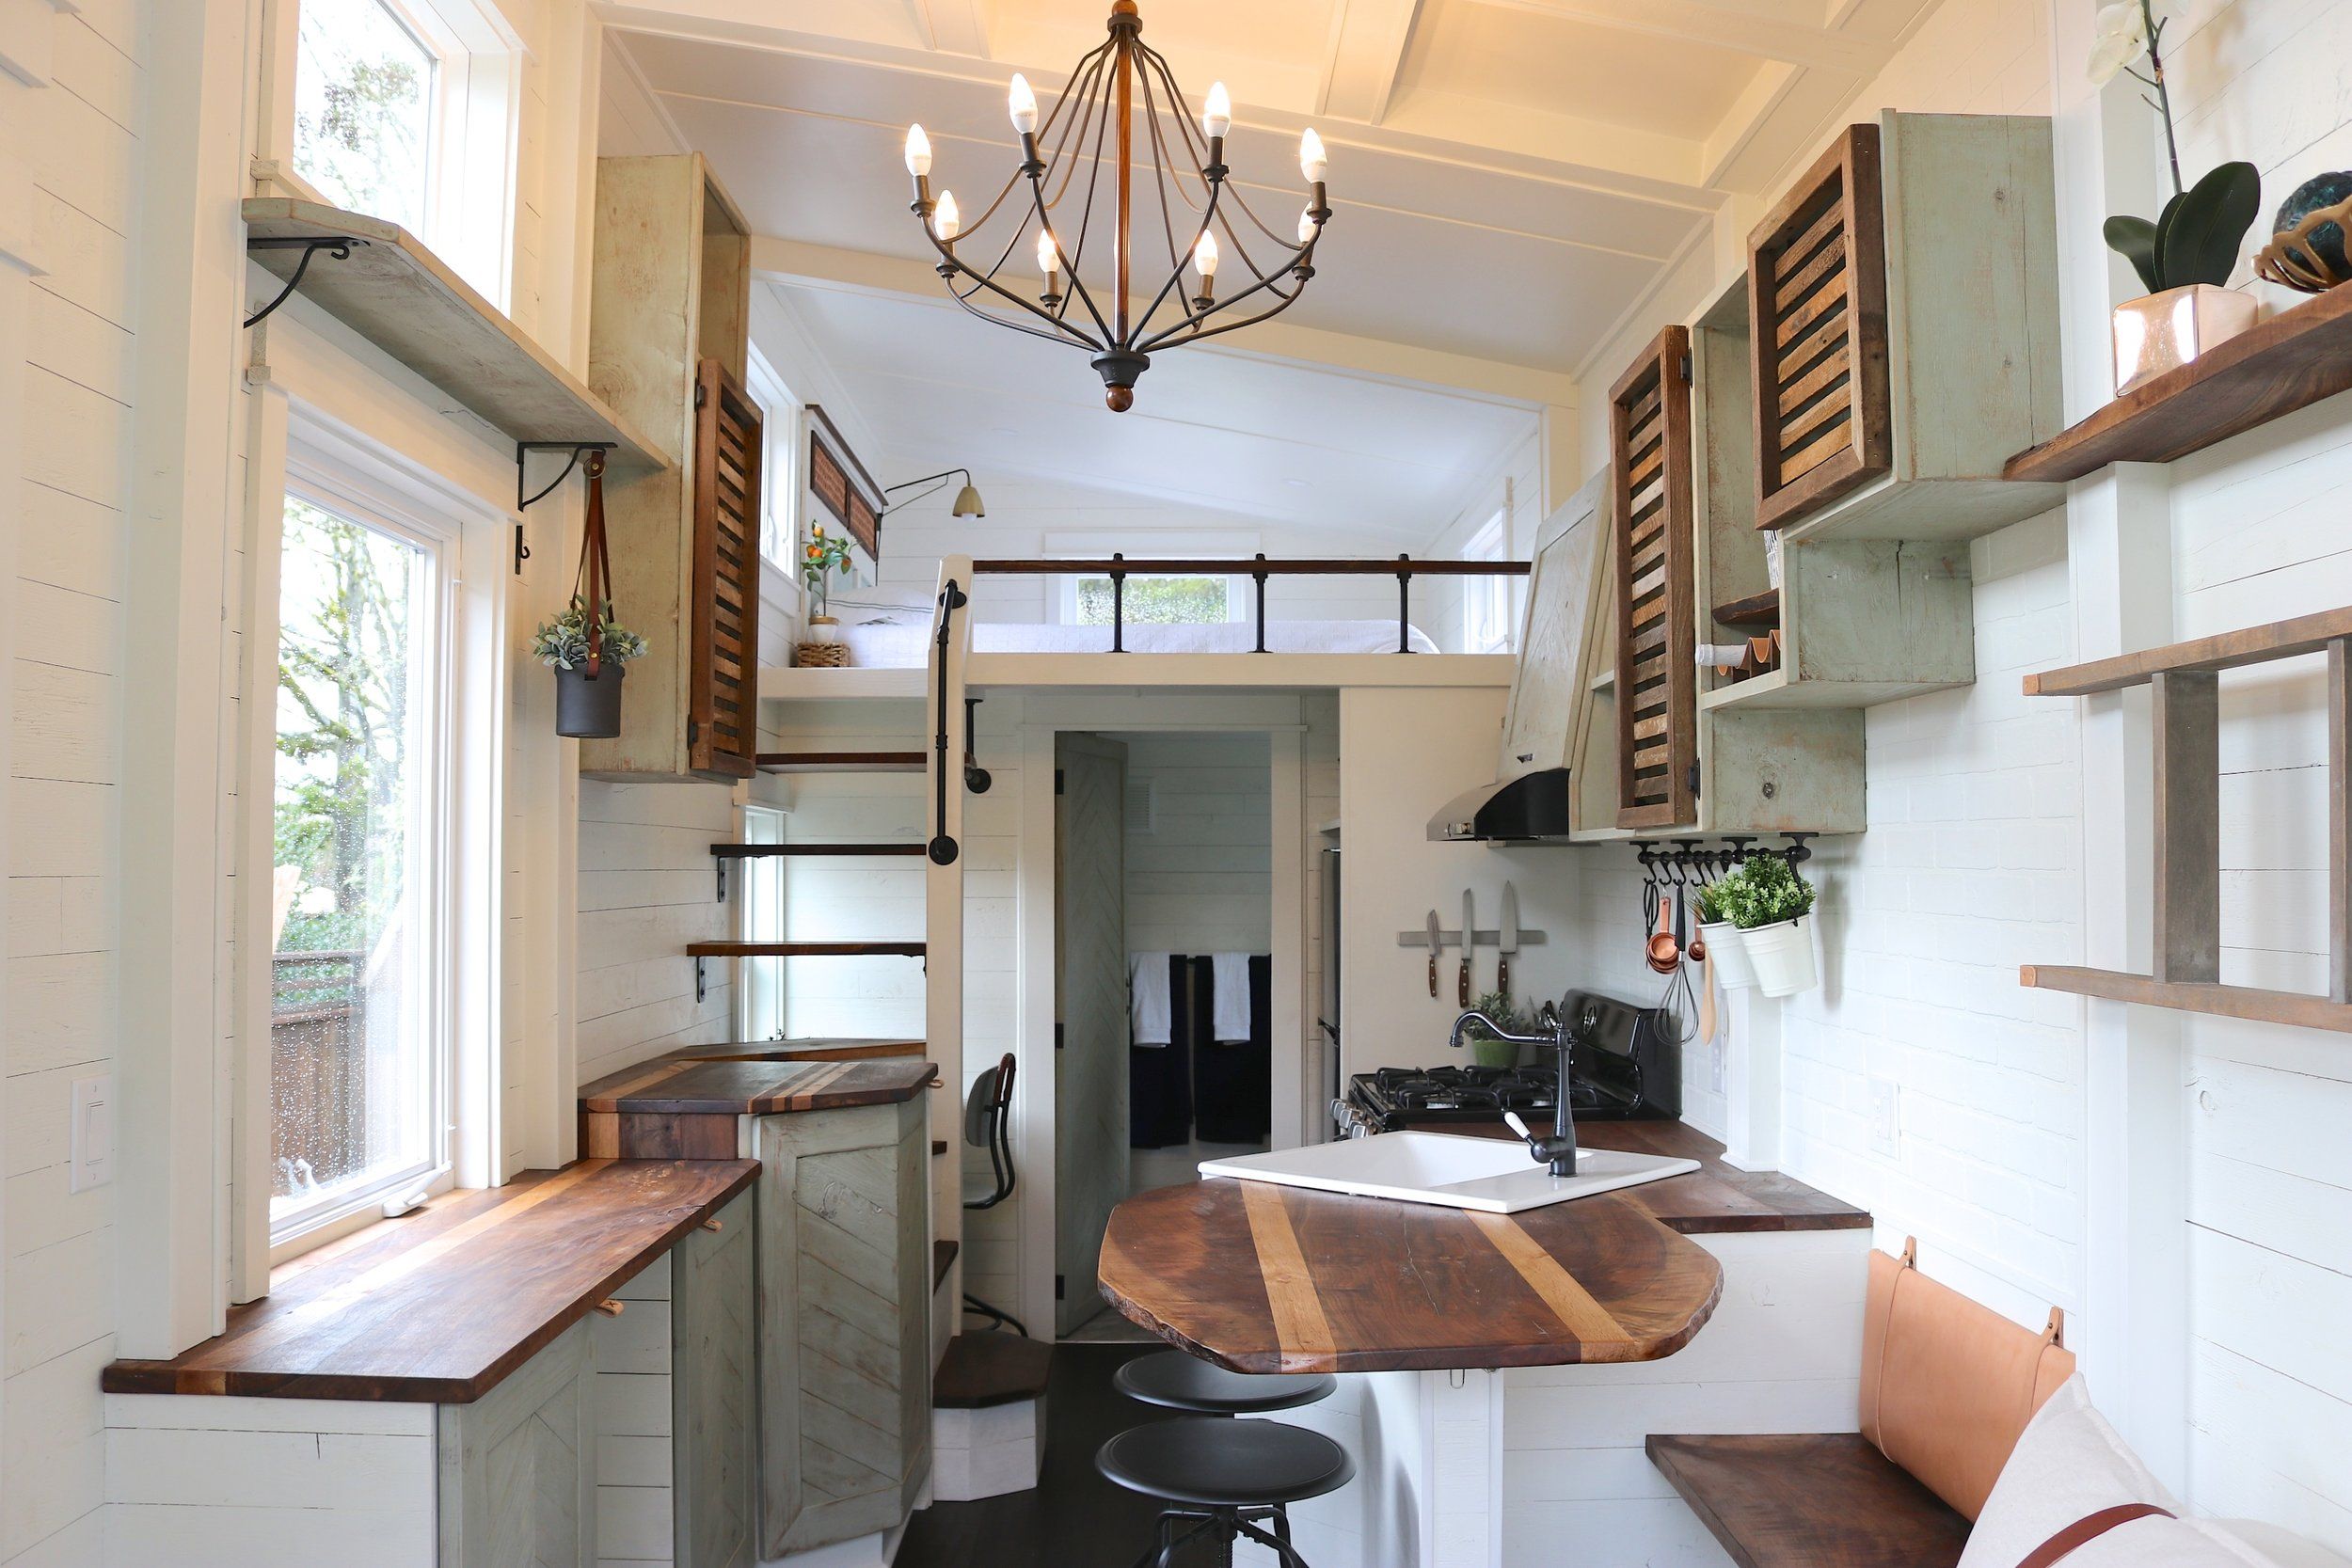 Tiny House Packs Farmhouse Chic Into 240 Square Feet Curbed